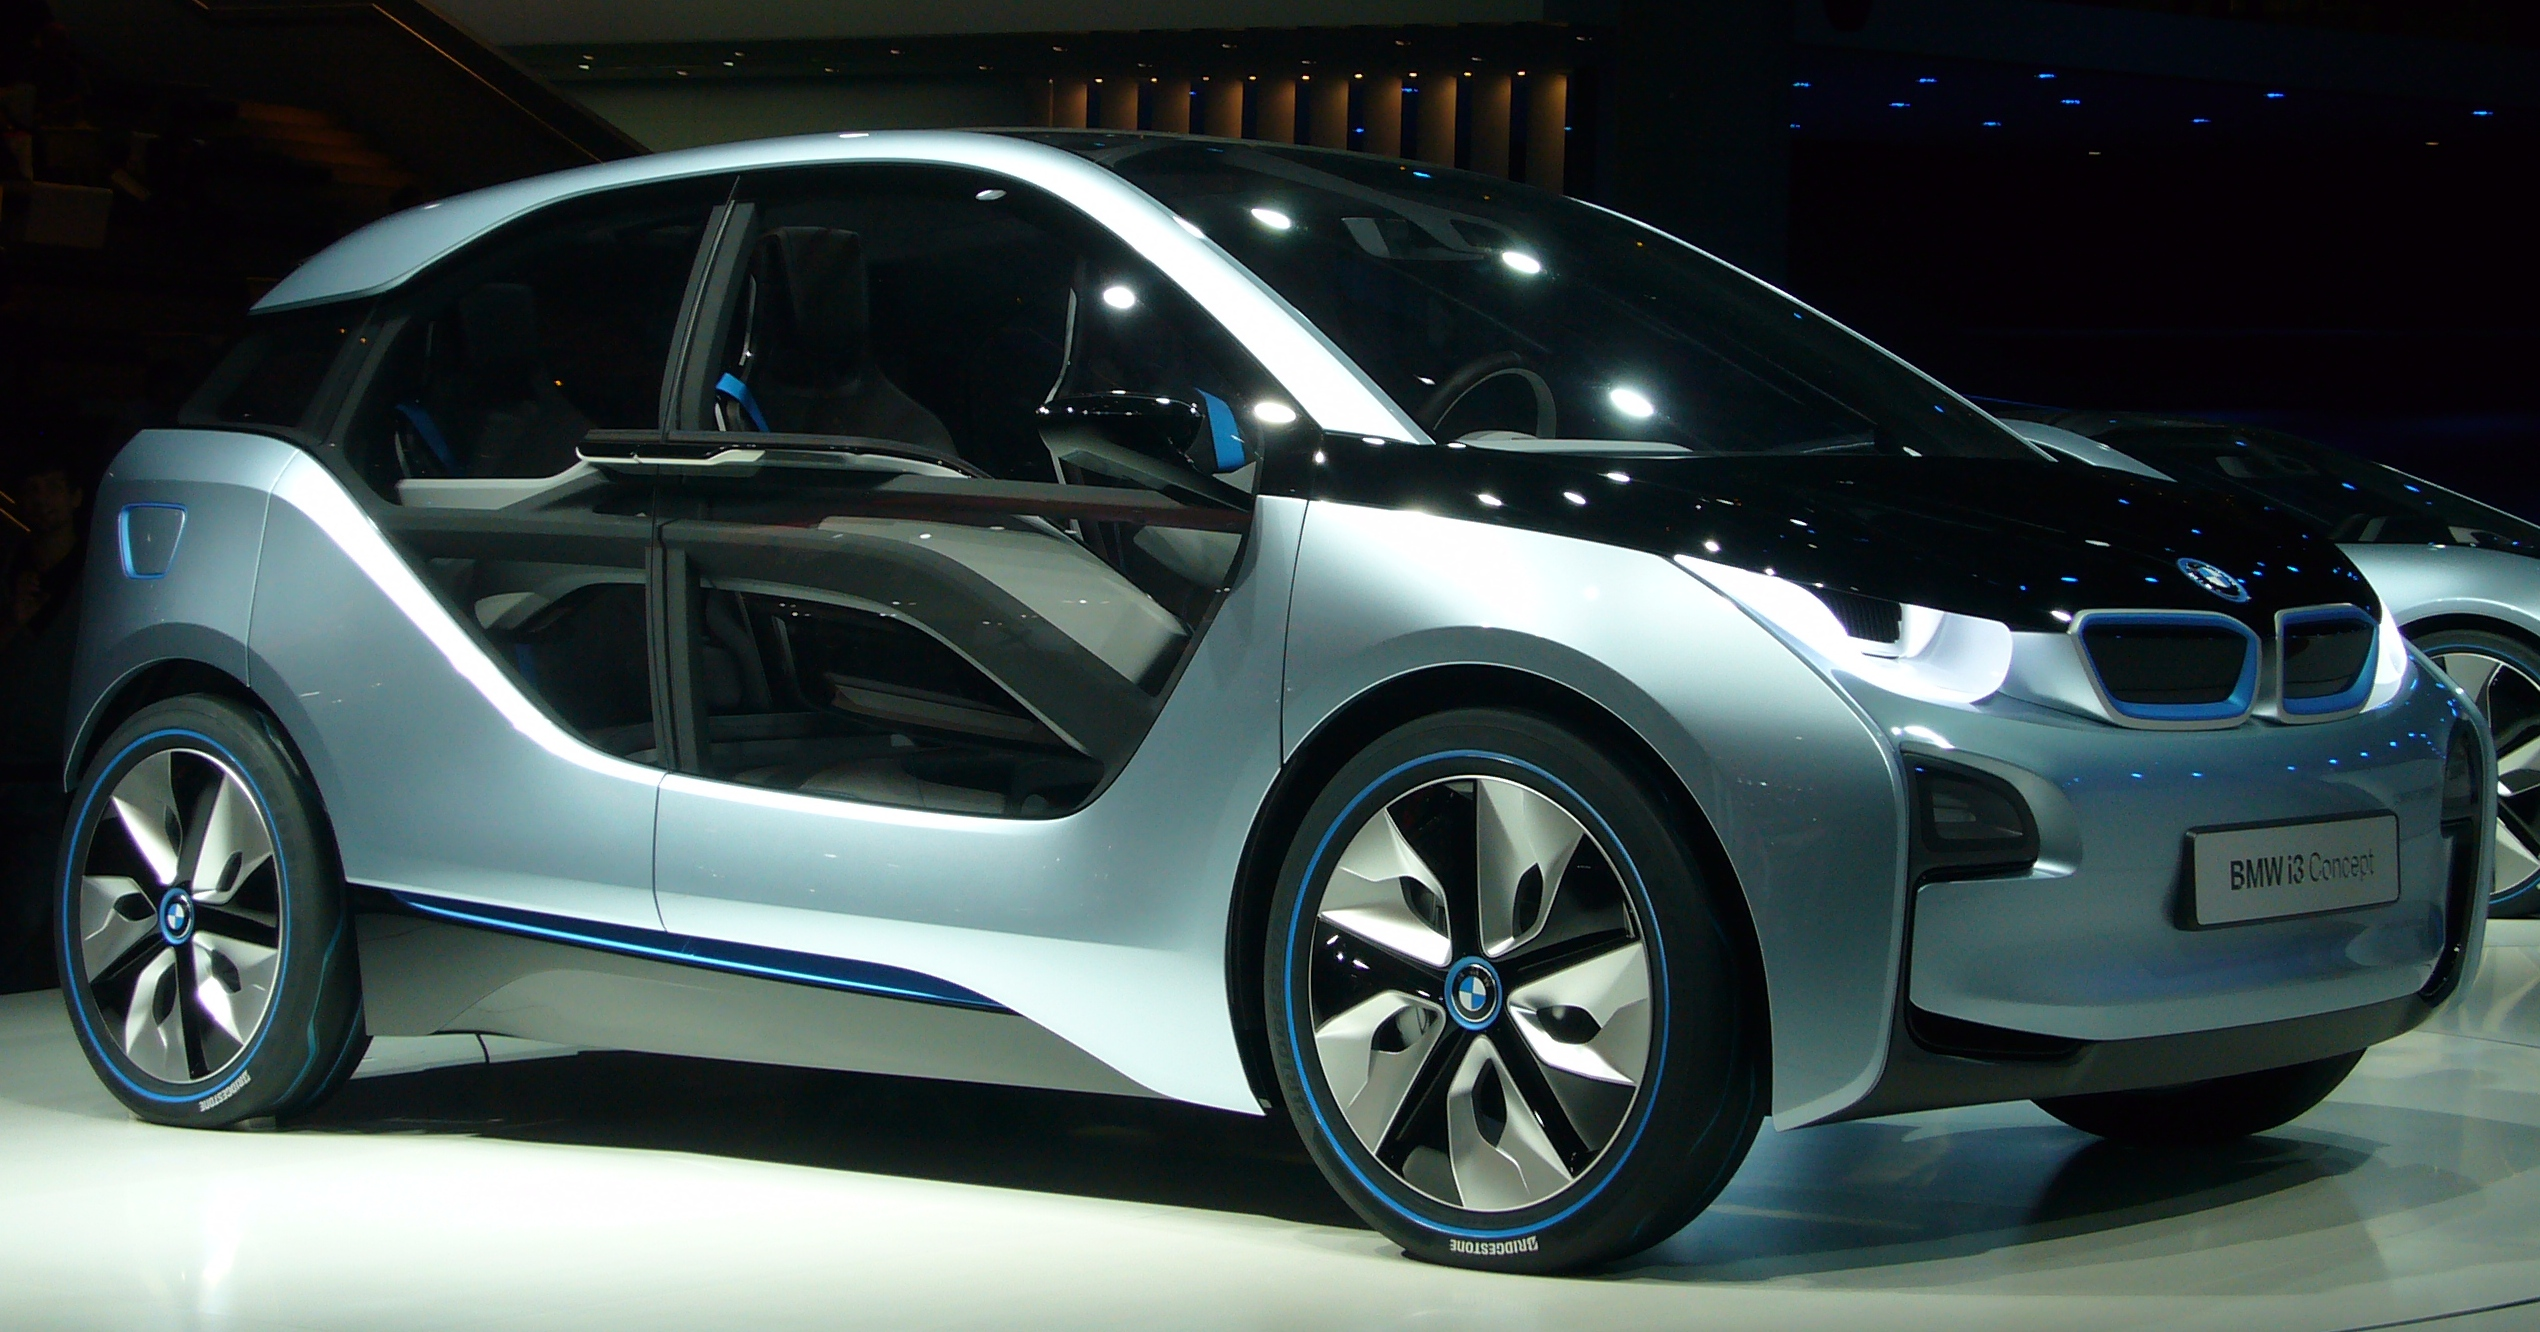 File:BMW i3 (front quarter).jpg - Wikimedia Commons